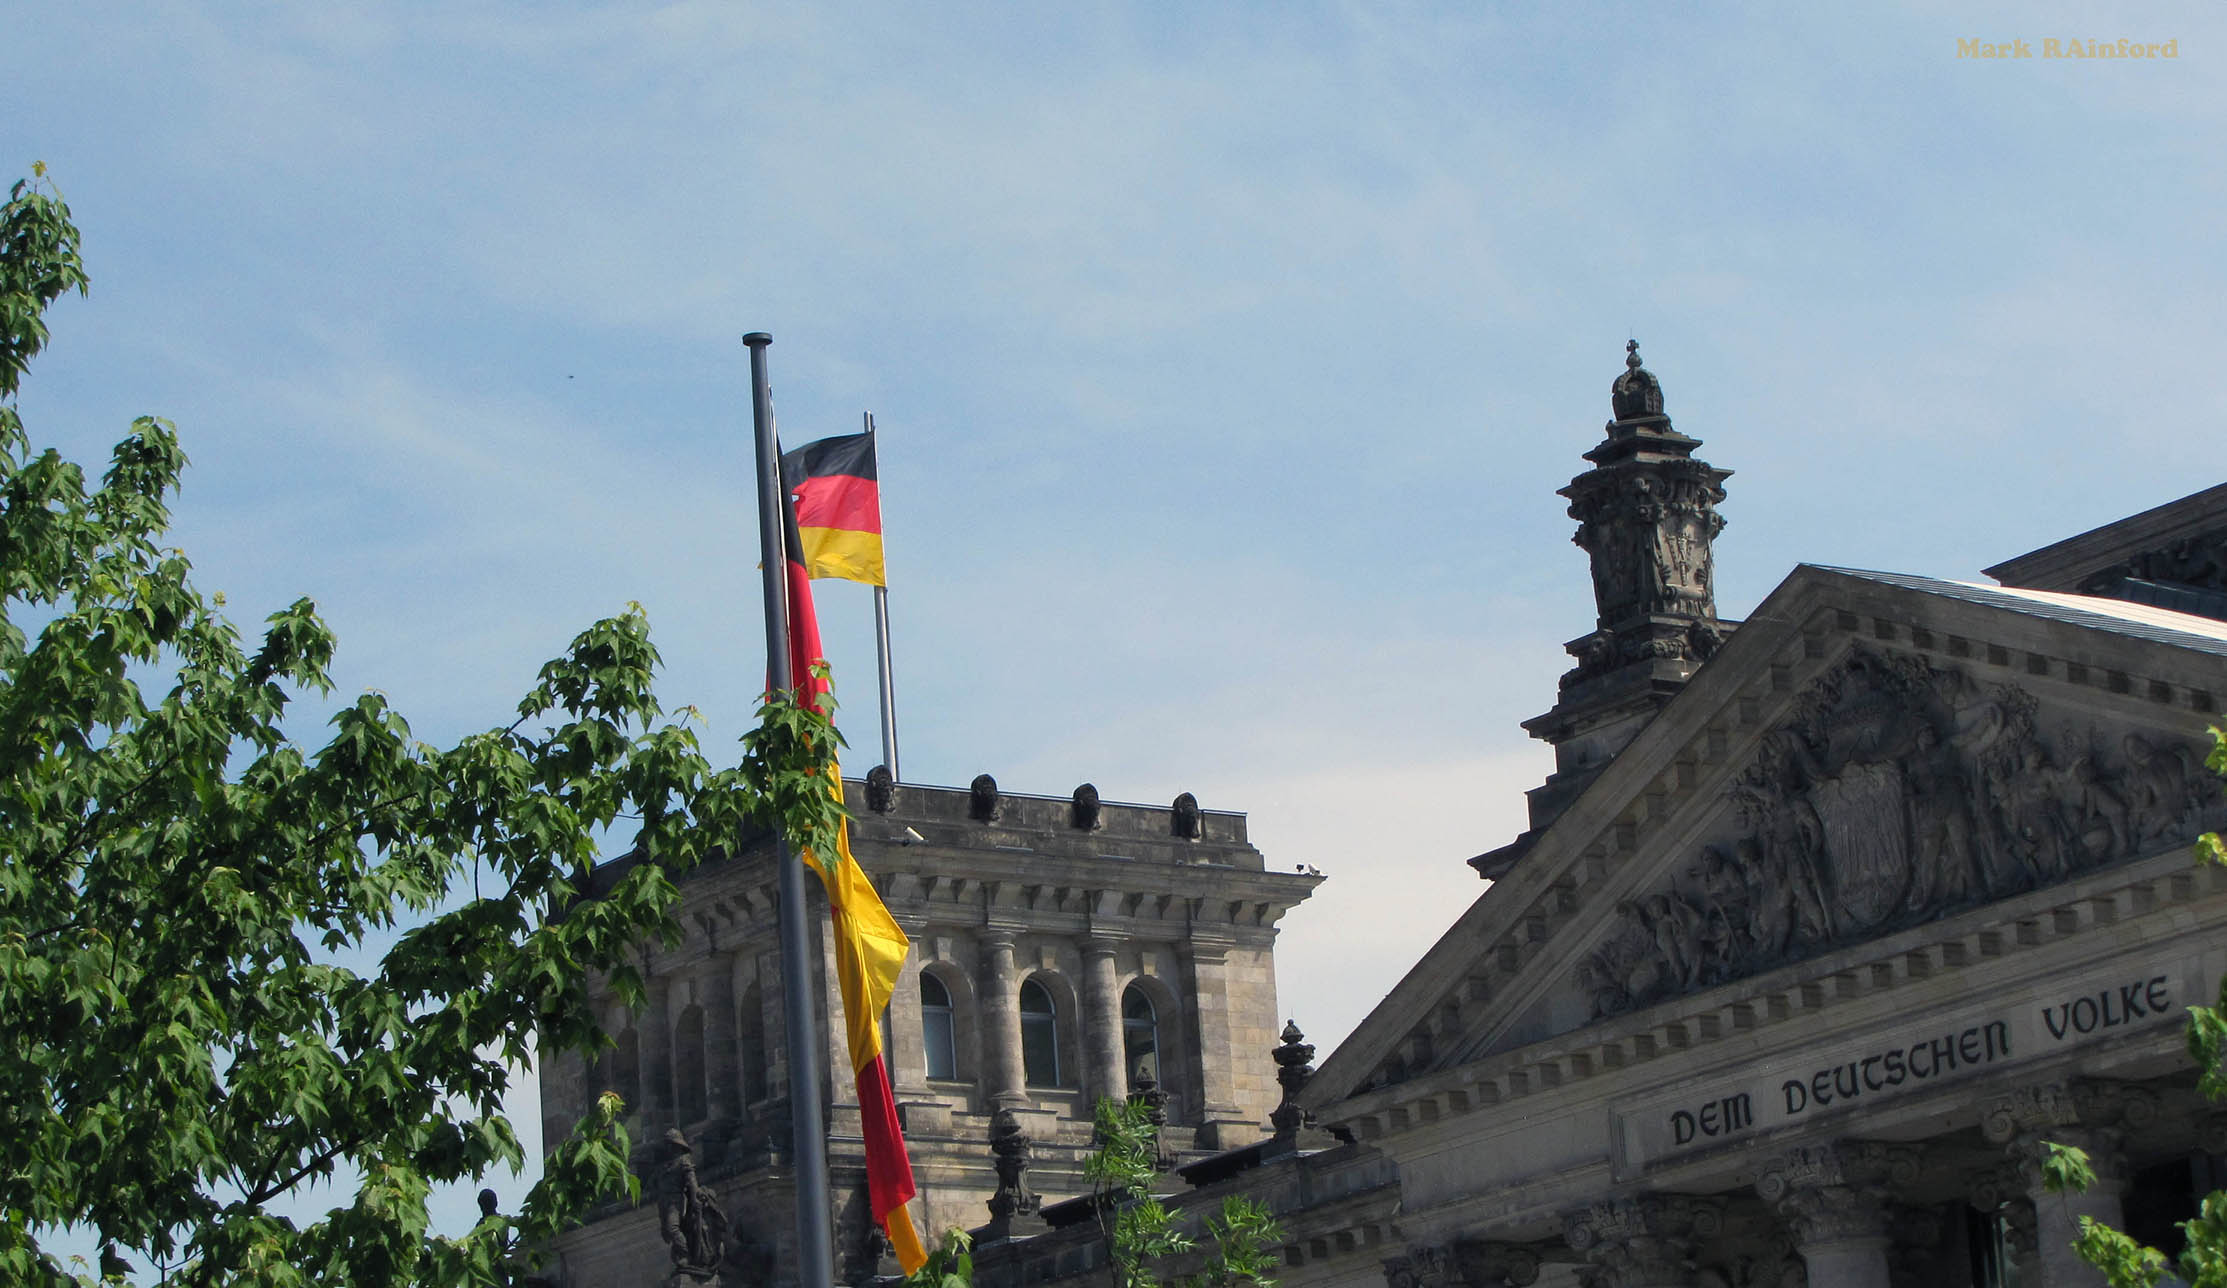 Berlin Germany Reichstag building